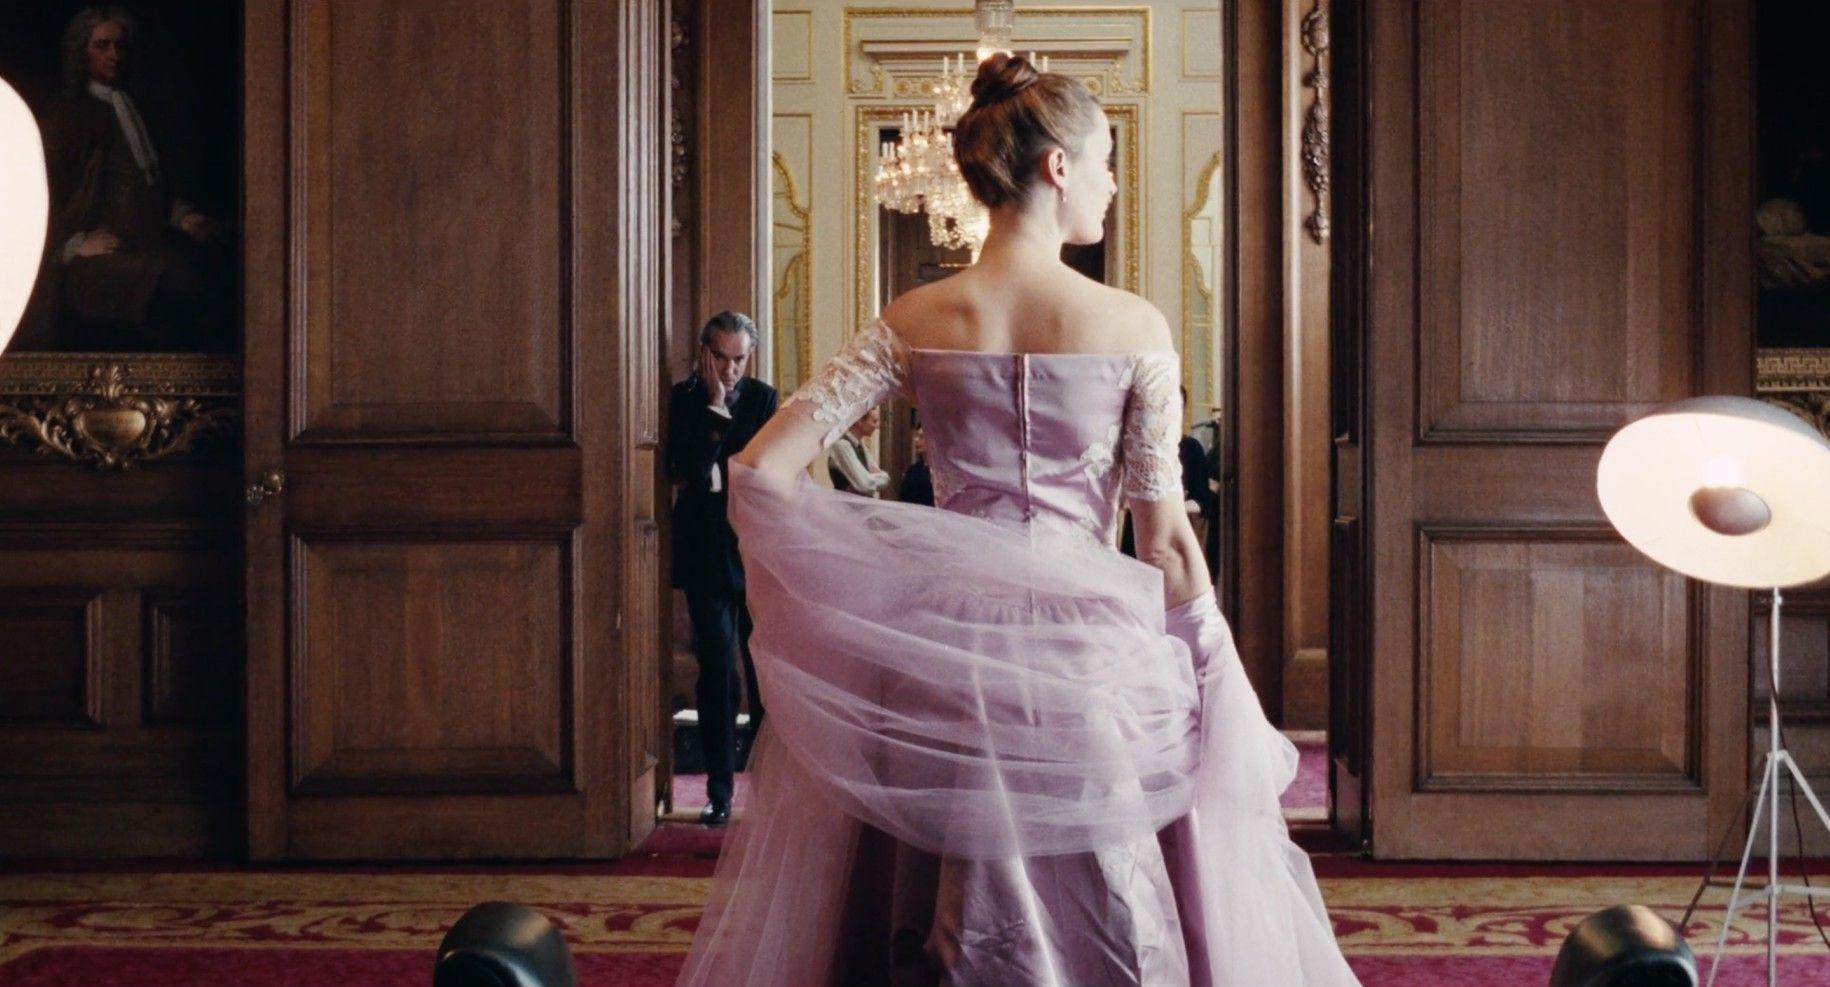 'Phantom Thread' tells one of the most striking and disturbing love stories of the year